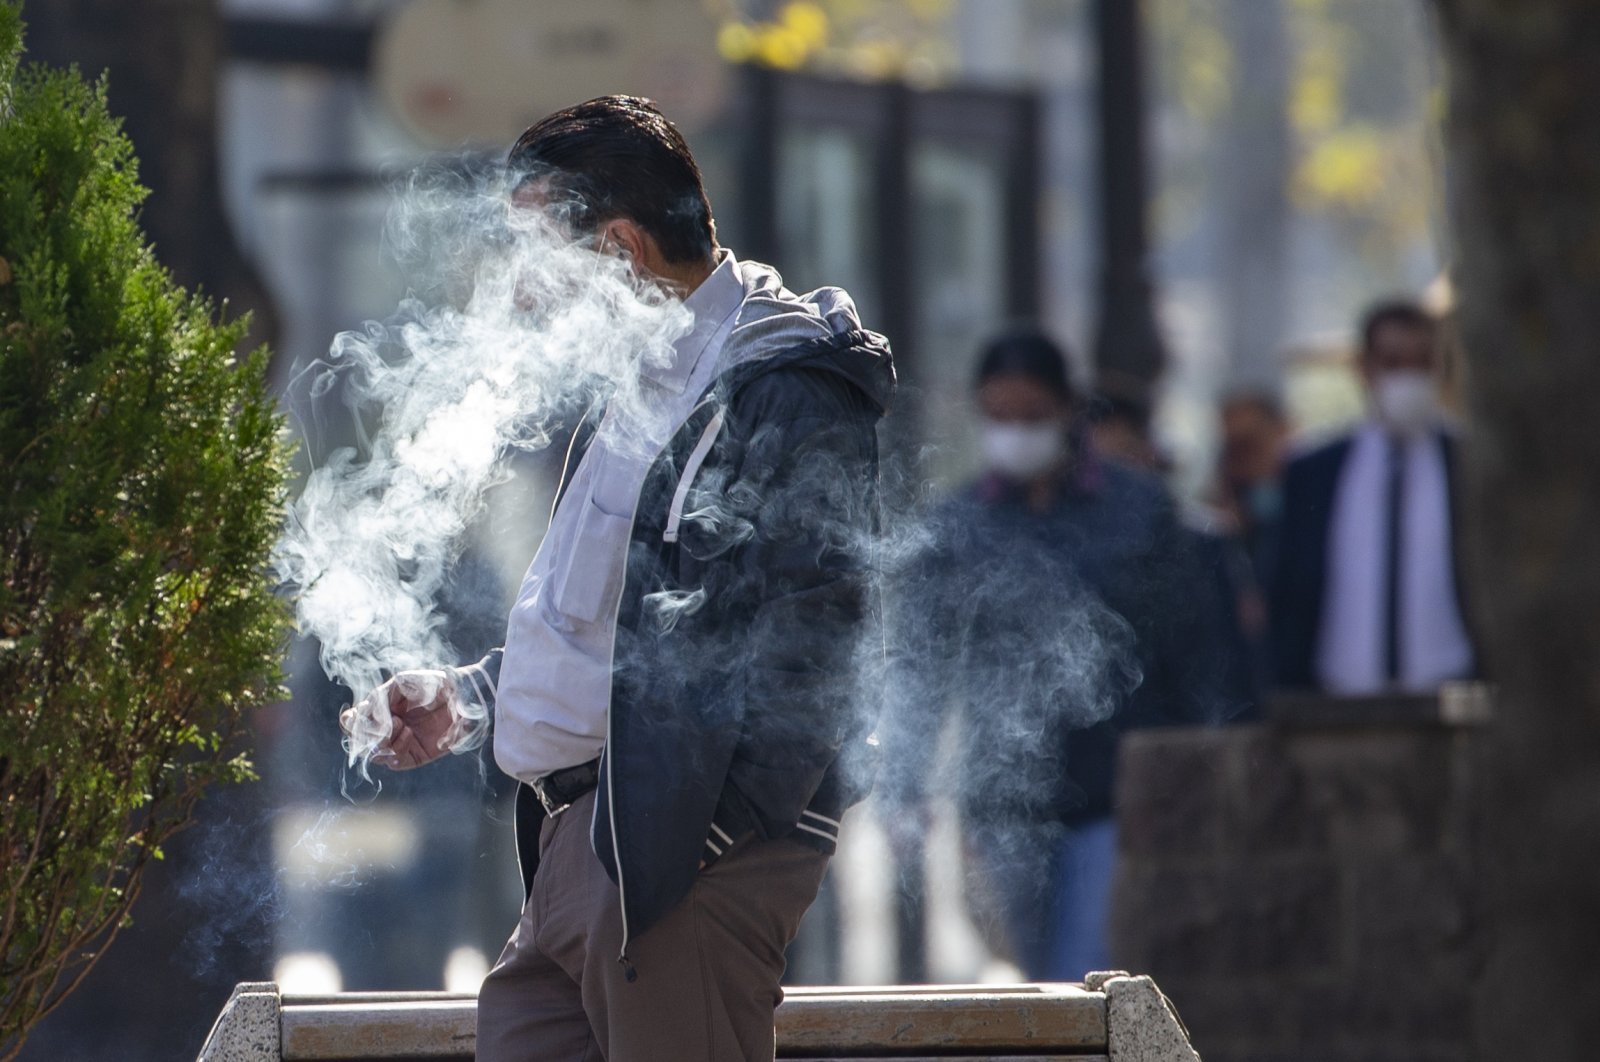 A man with a mask on his chin smokes a cigarette on a street in the capital Ankara, Turkey, Nov. 12, 2020. (AA Photo)